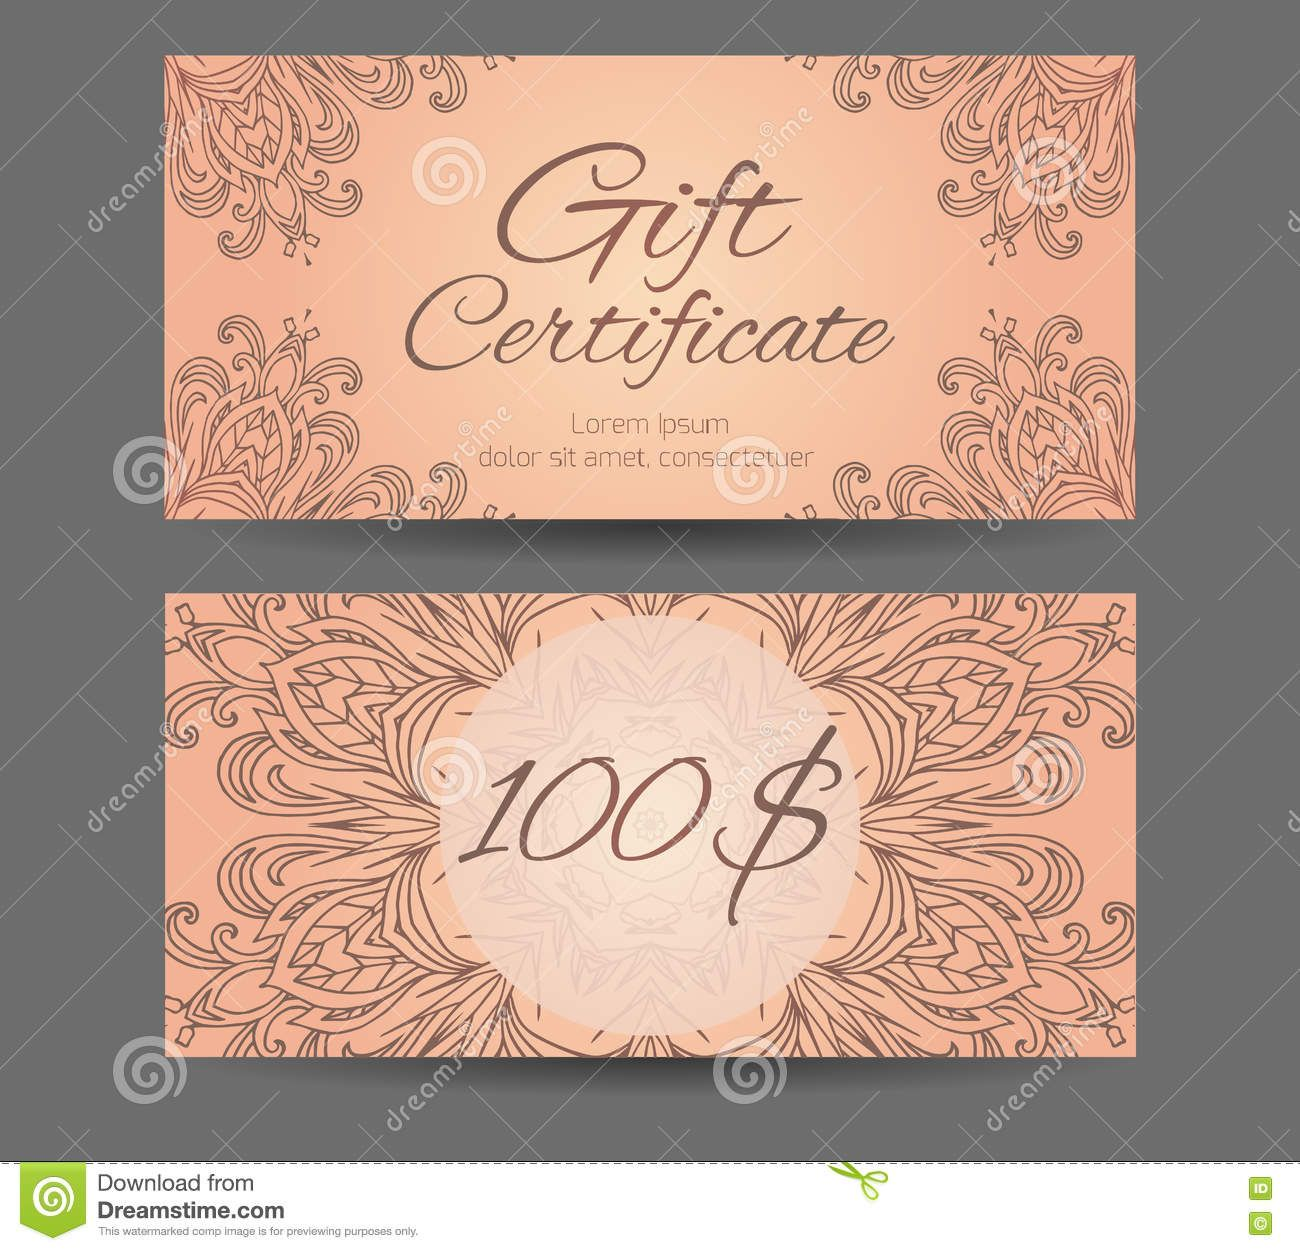 Template Gift Certificate For Yoga Studio Spa Center With Regard To Yoga Gift Cert Gift Certificate Template Certificate Templates Certificate Design Template Yoga gift certificate template free